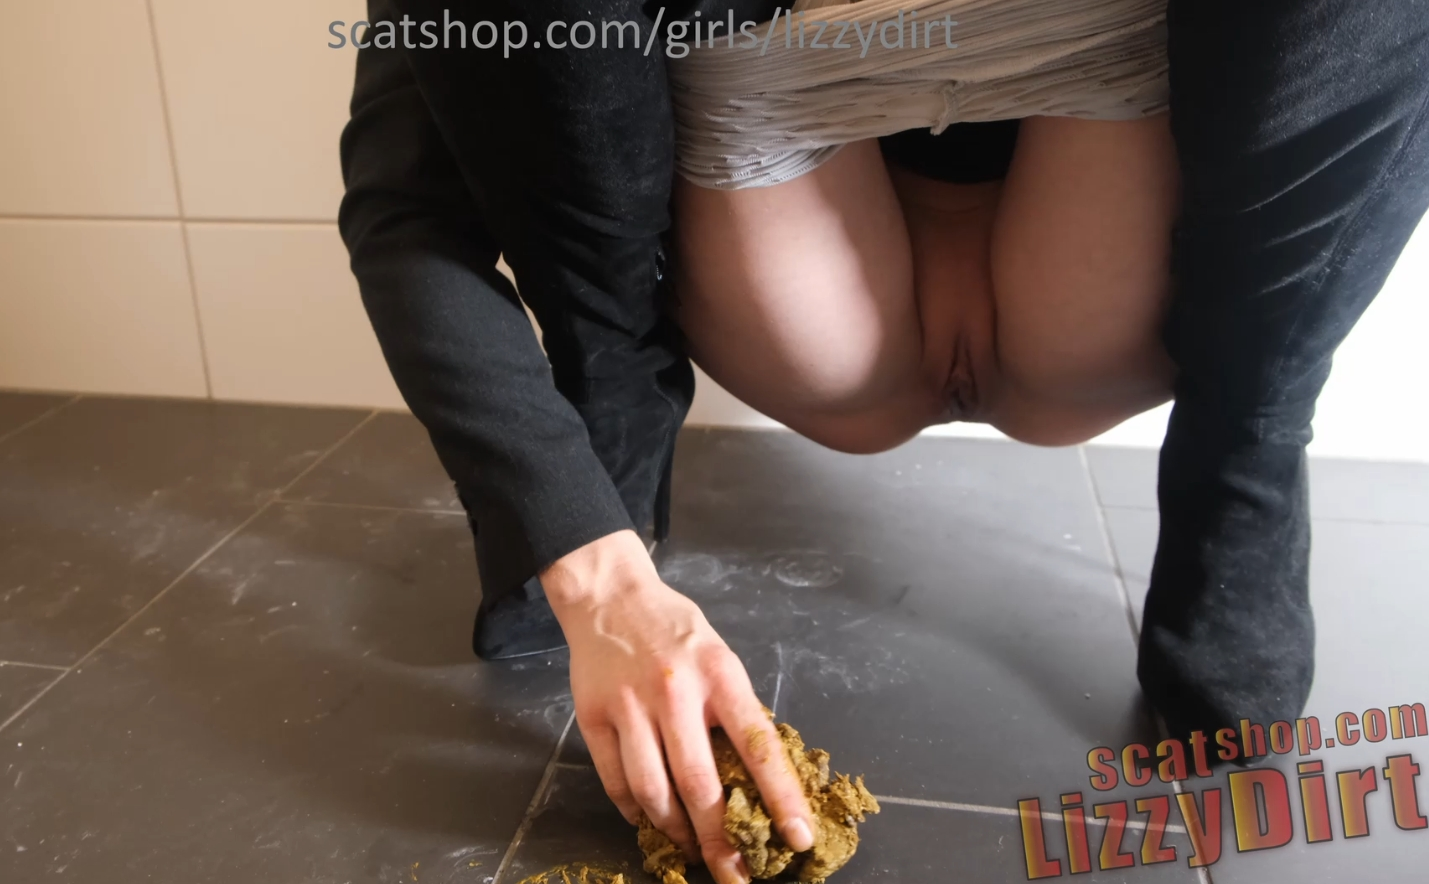 Thick turd out of my perfect asshole (PREMIUM REQUEST BY user Tommy – 4k EXTREME SCAT) by LizzyDirt from 15.09.2021